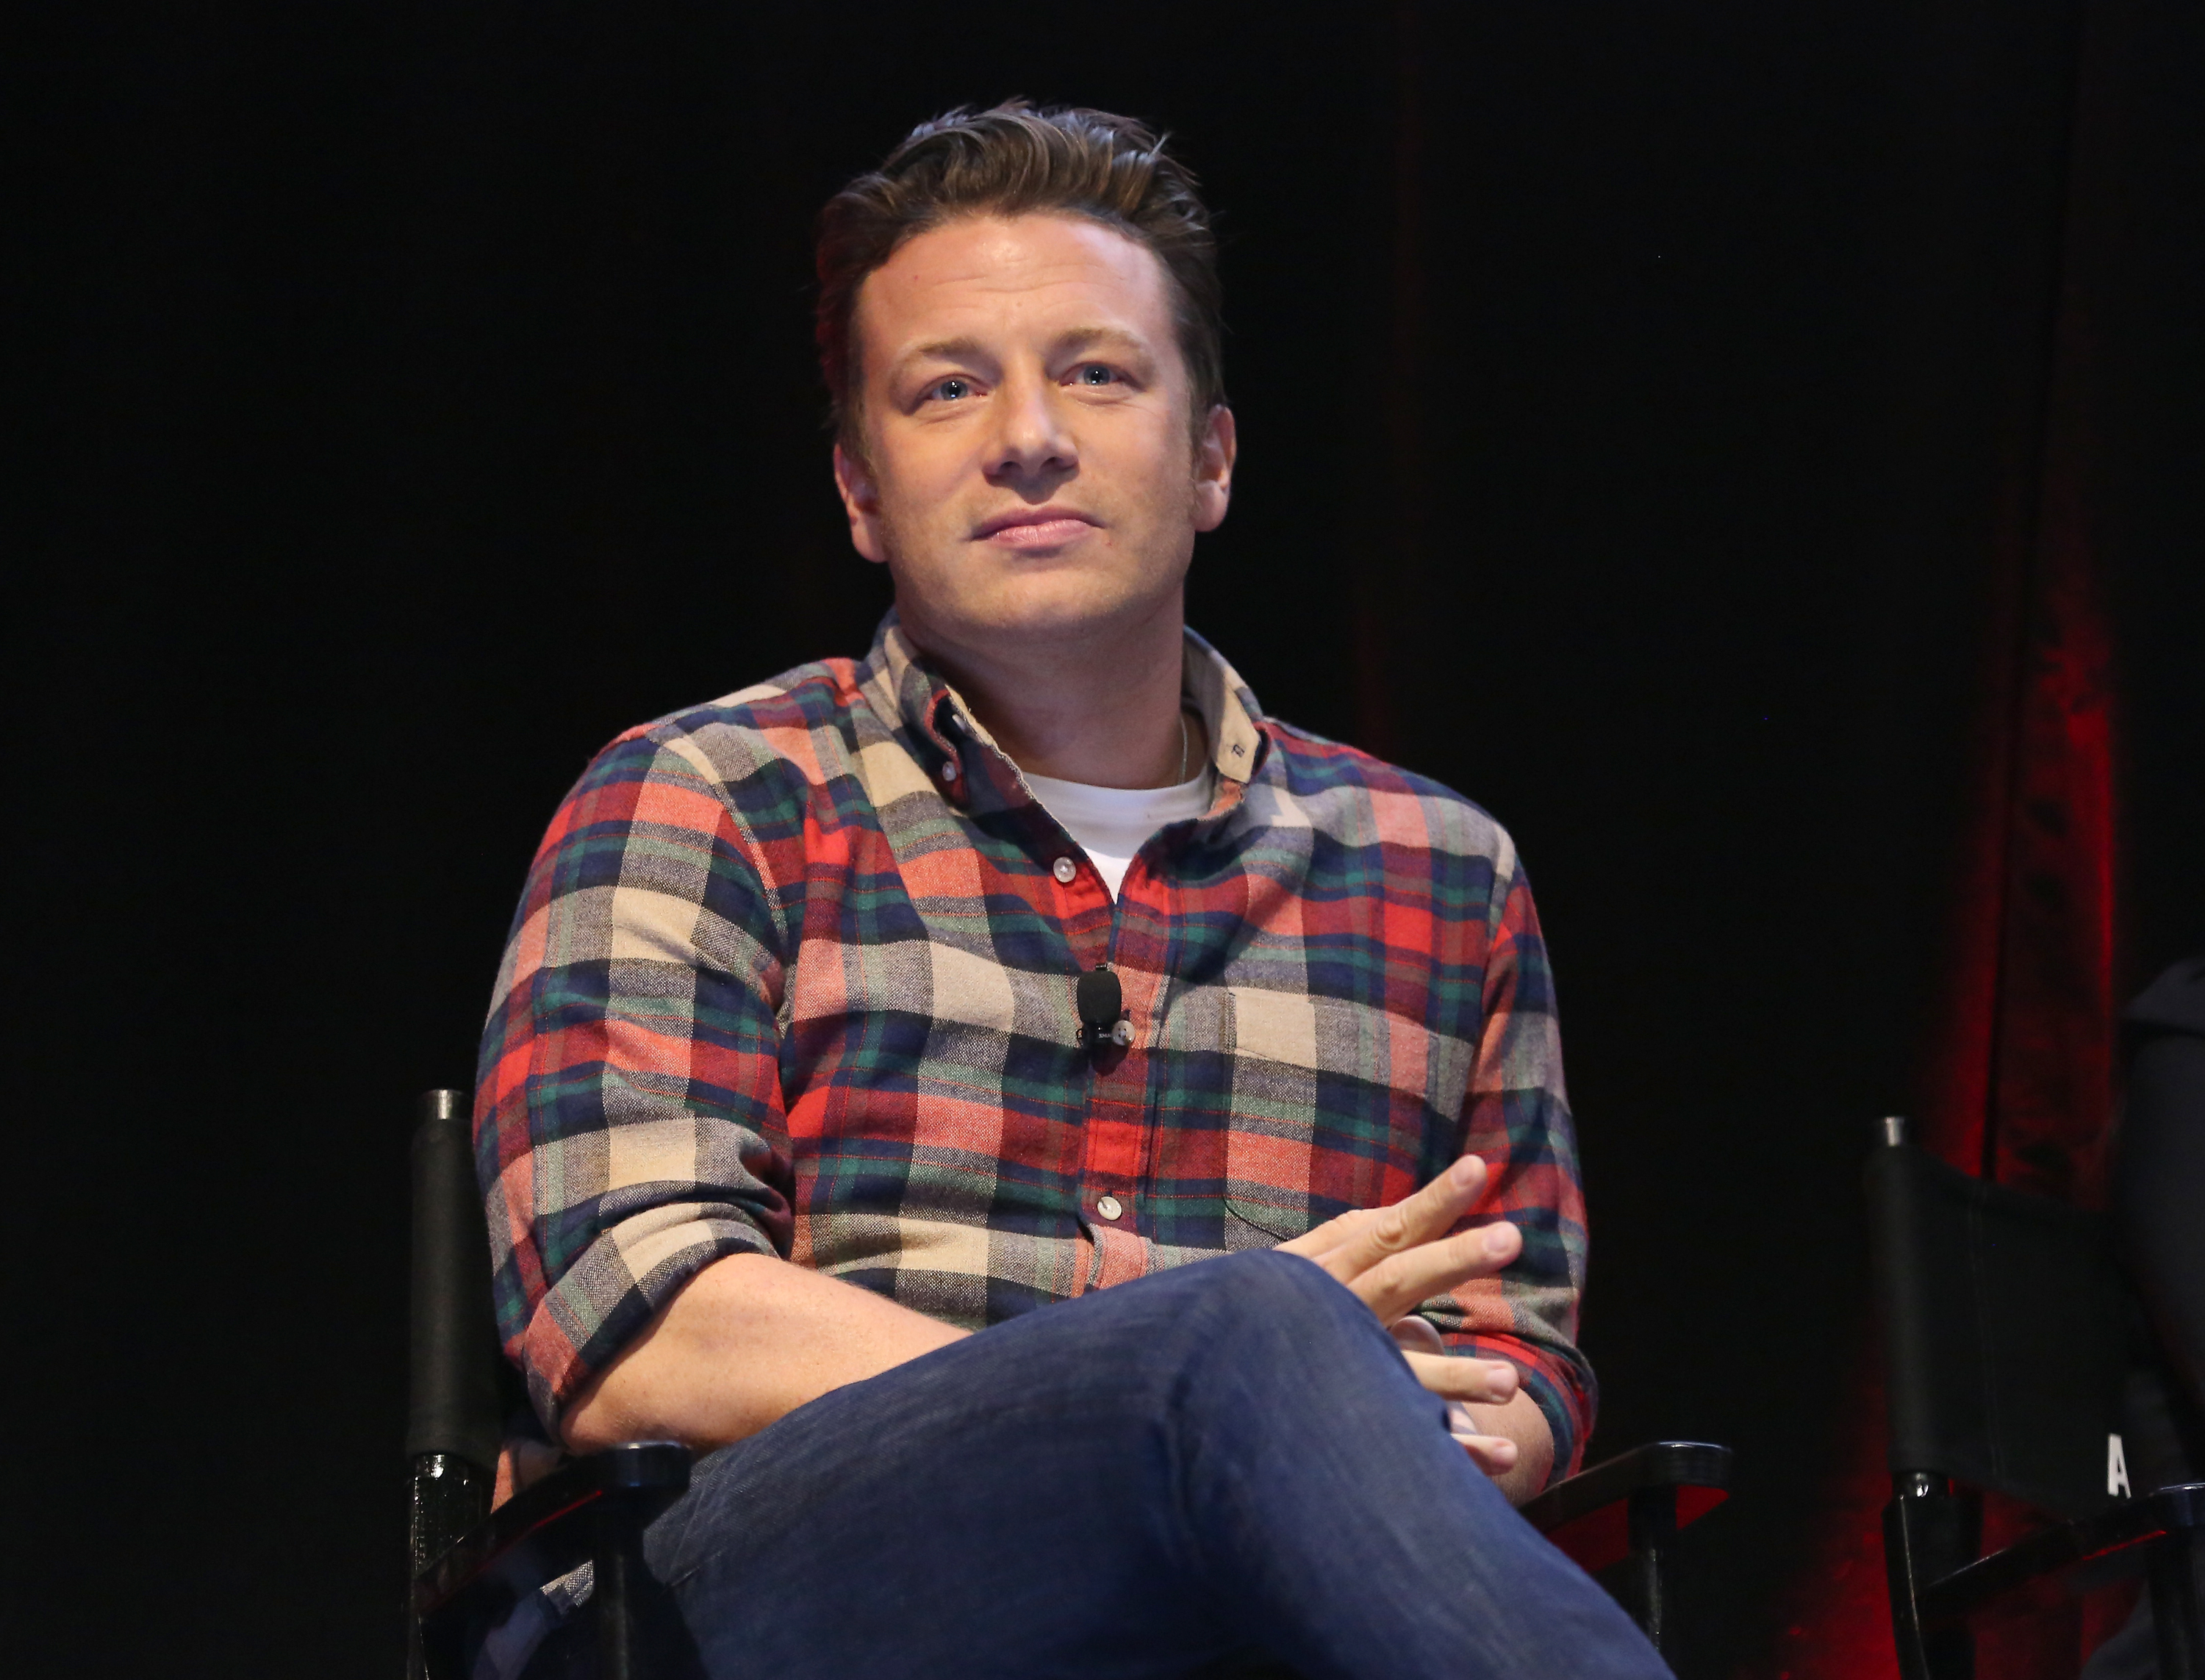 Jamie Oliver's U.K. Restaurant Empire Collapses